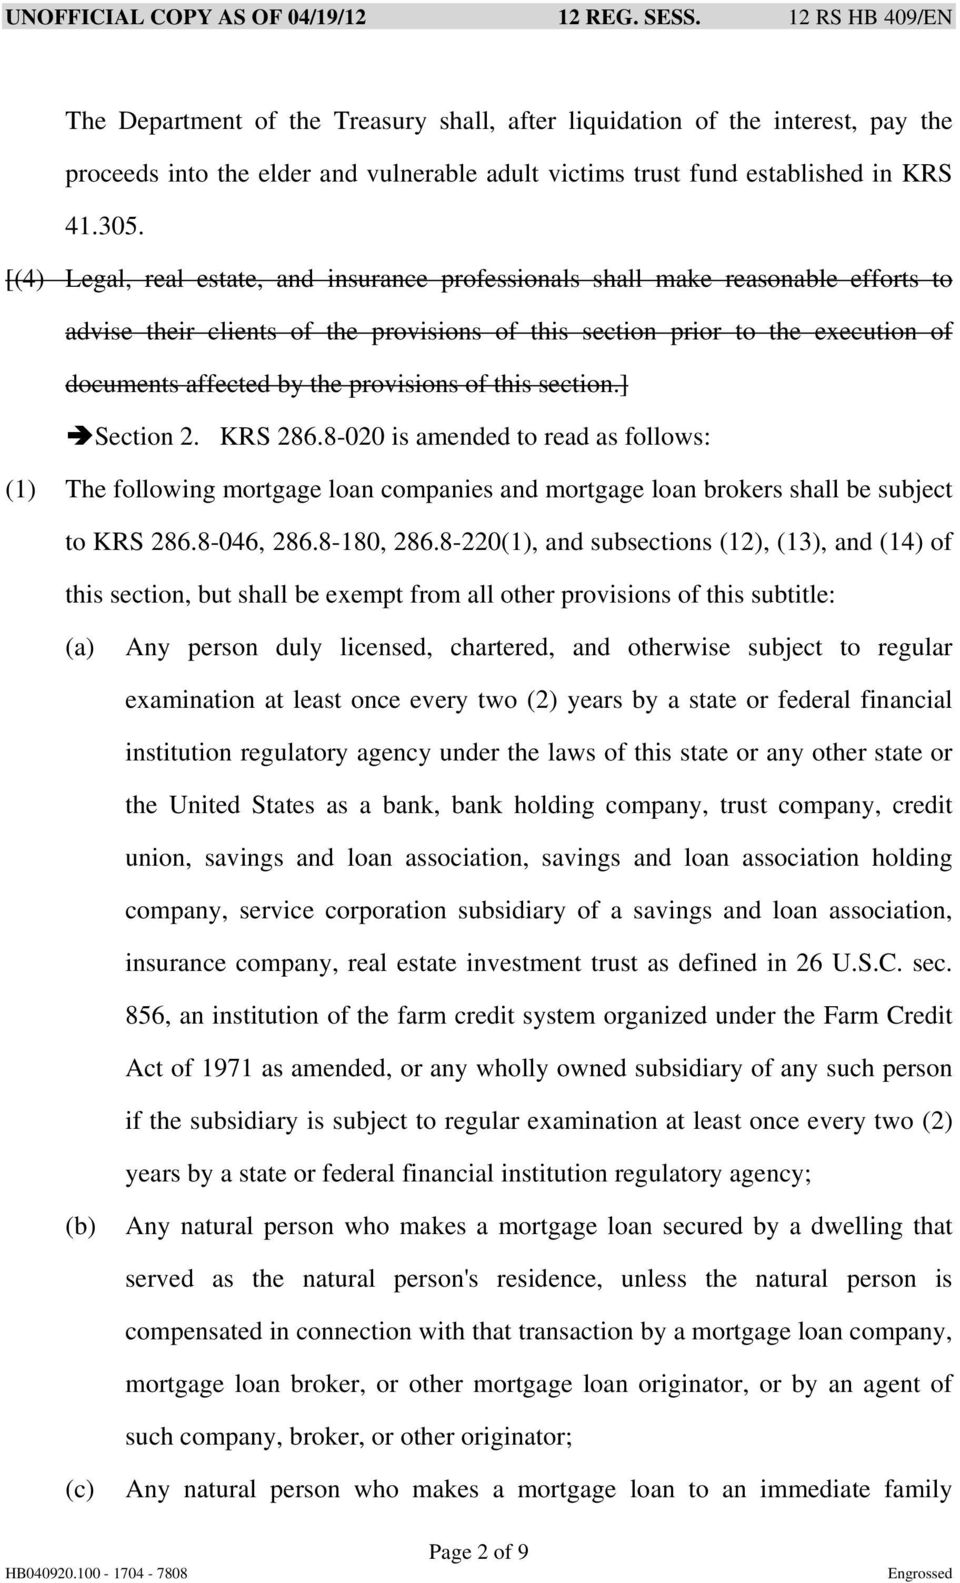 provisions of this section.] Section 2. KRS 286.8-020 is amended to read as follows: (1) The following mortgage loan companies and mortgage loan brokers shall be subject to KRS 286.8-046, 286.